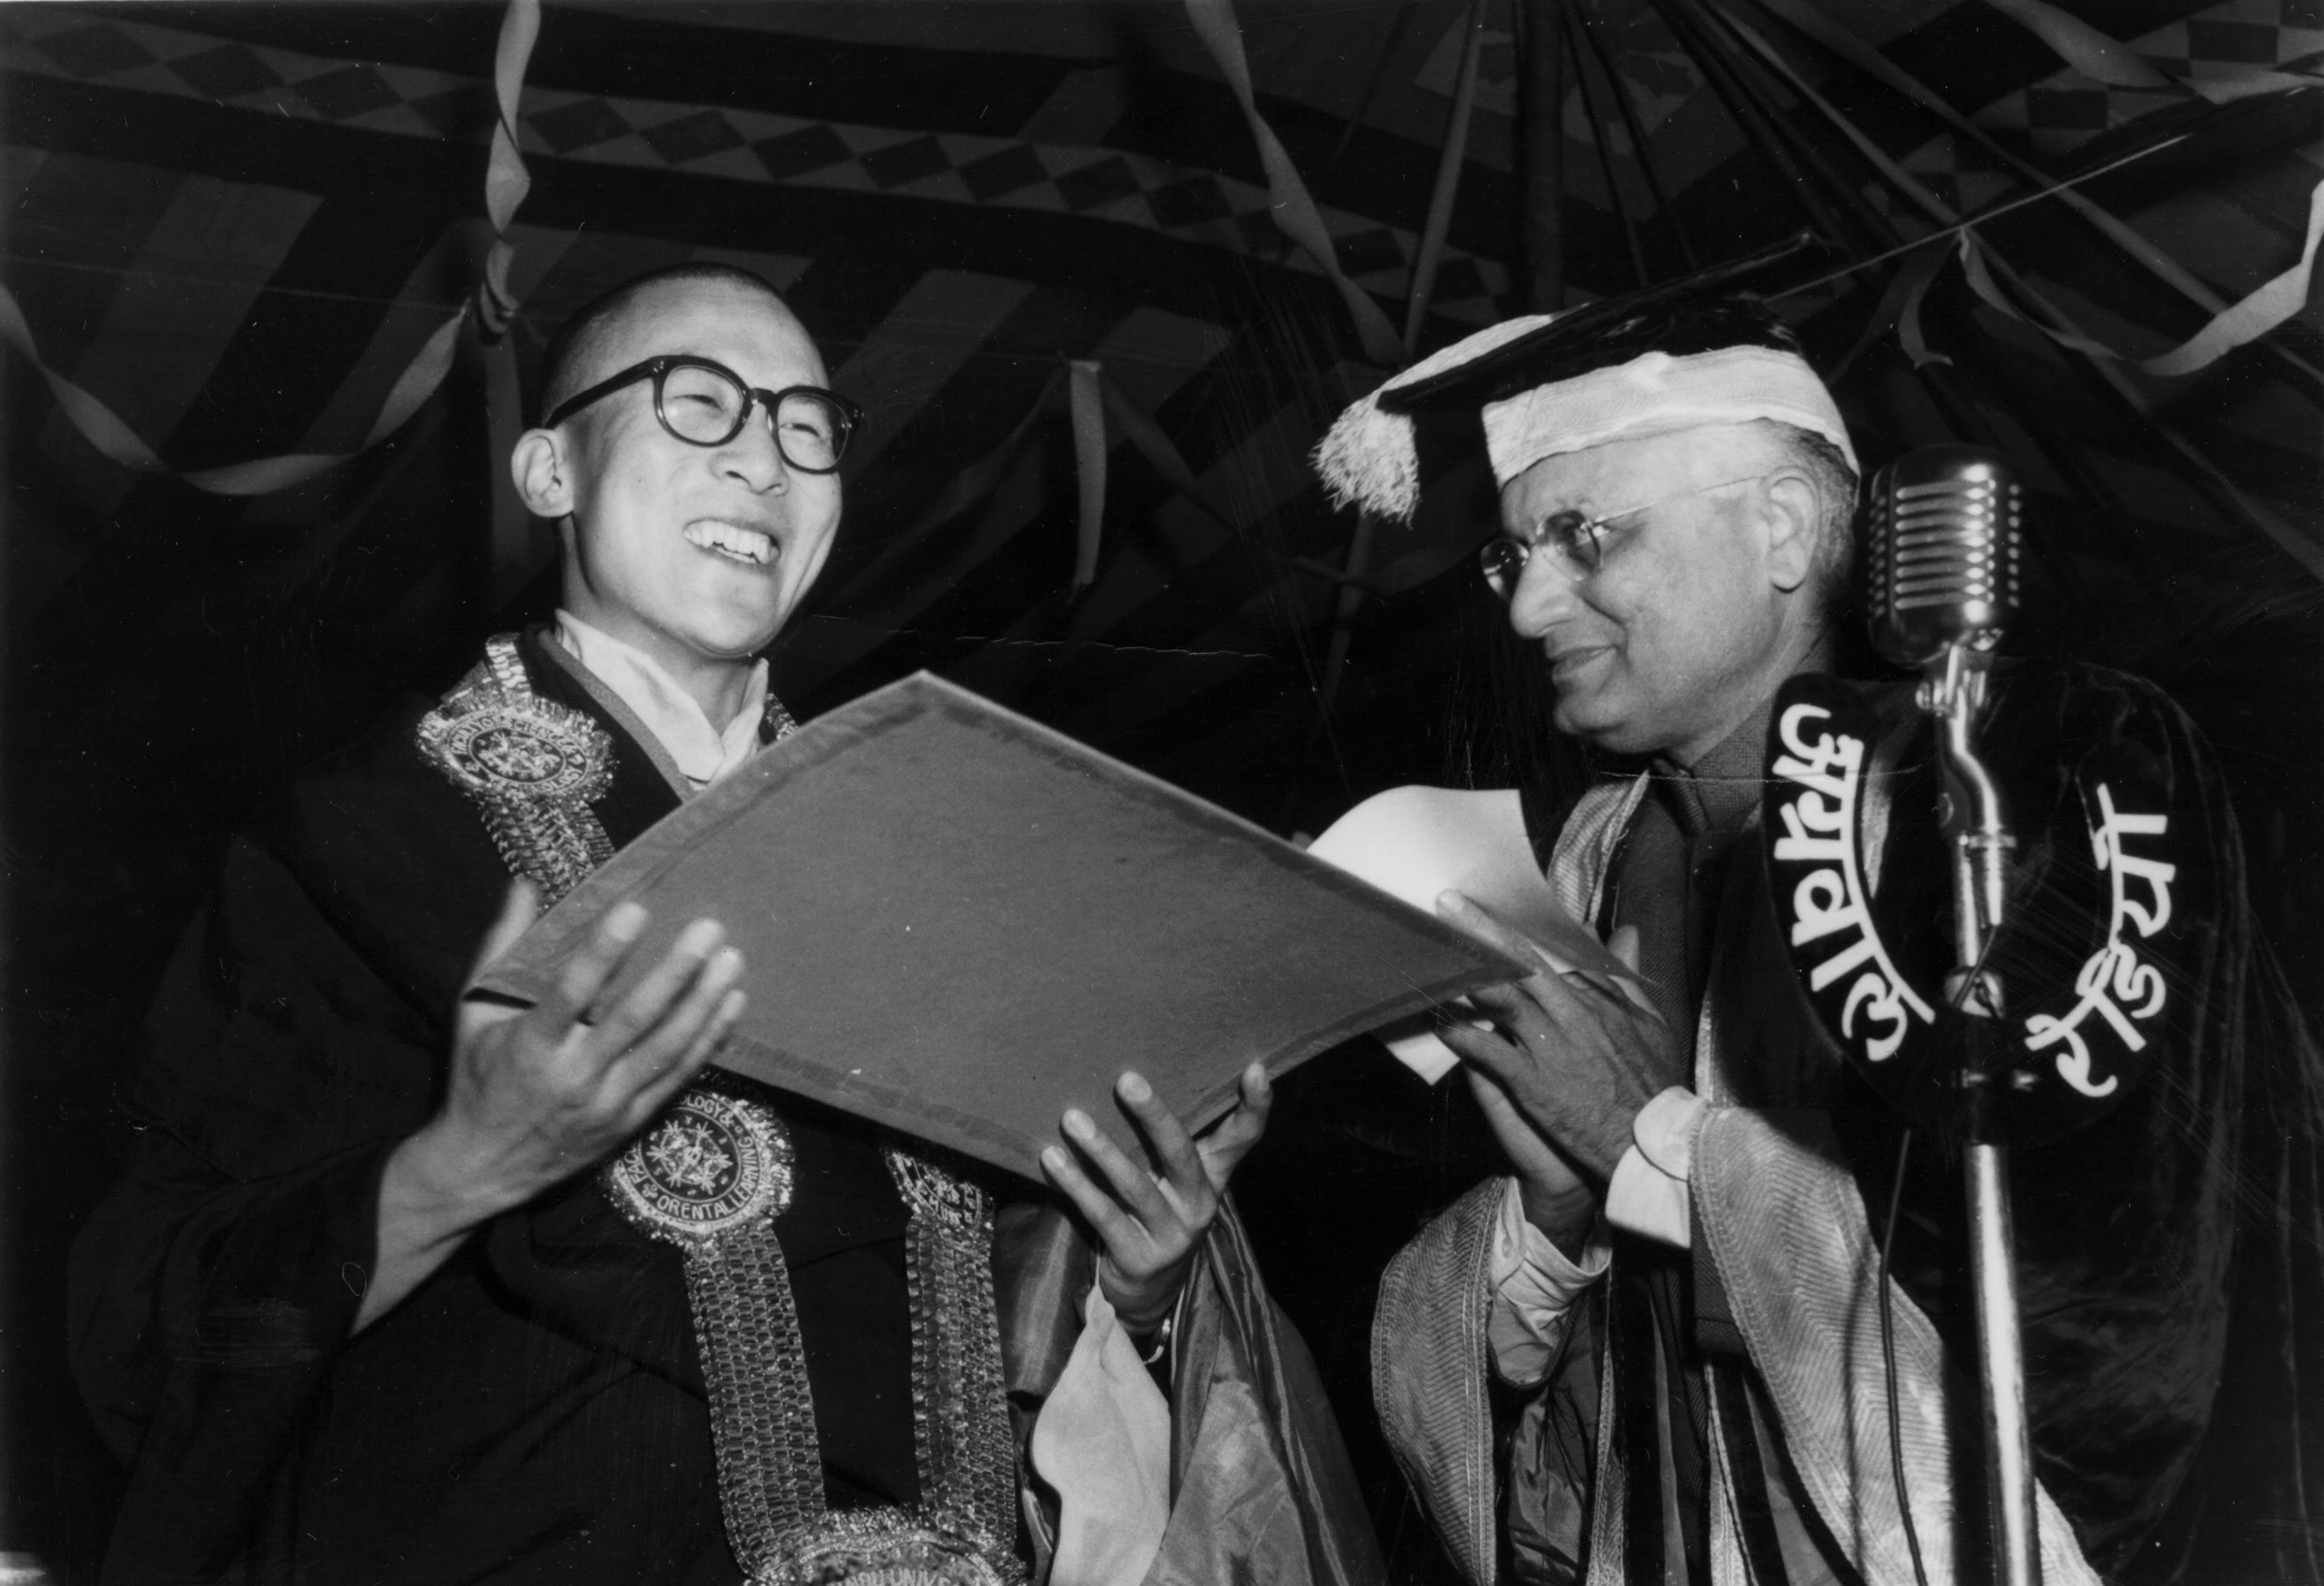 Dr. V.S. Jha, Vice-Chancellor of the Banaras Hindu University confers the an honorary Doctor of Letters on His Holiness the Dalai Lama at a special convocation in December 1956 in India.